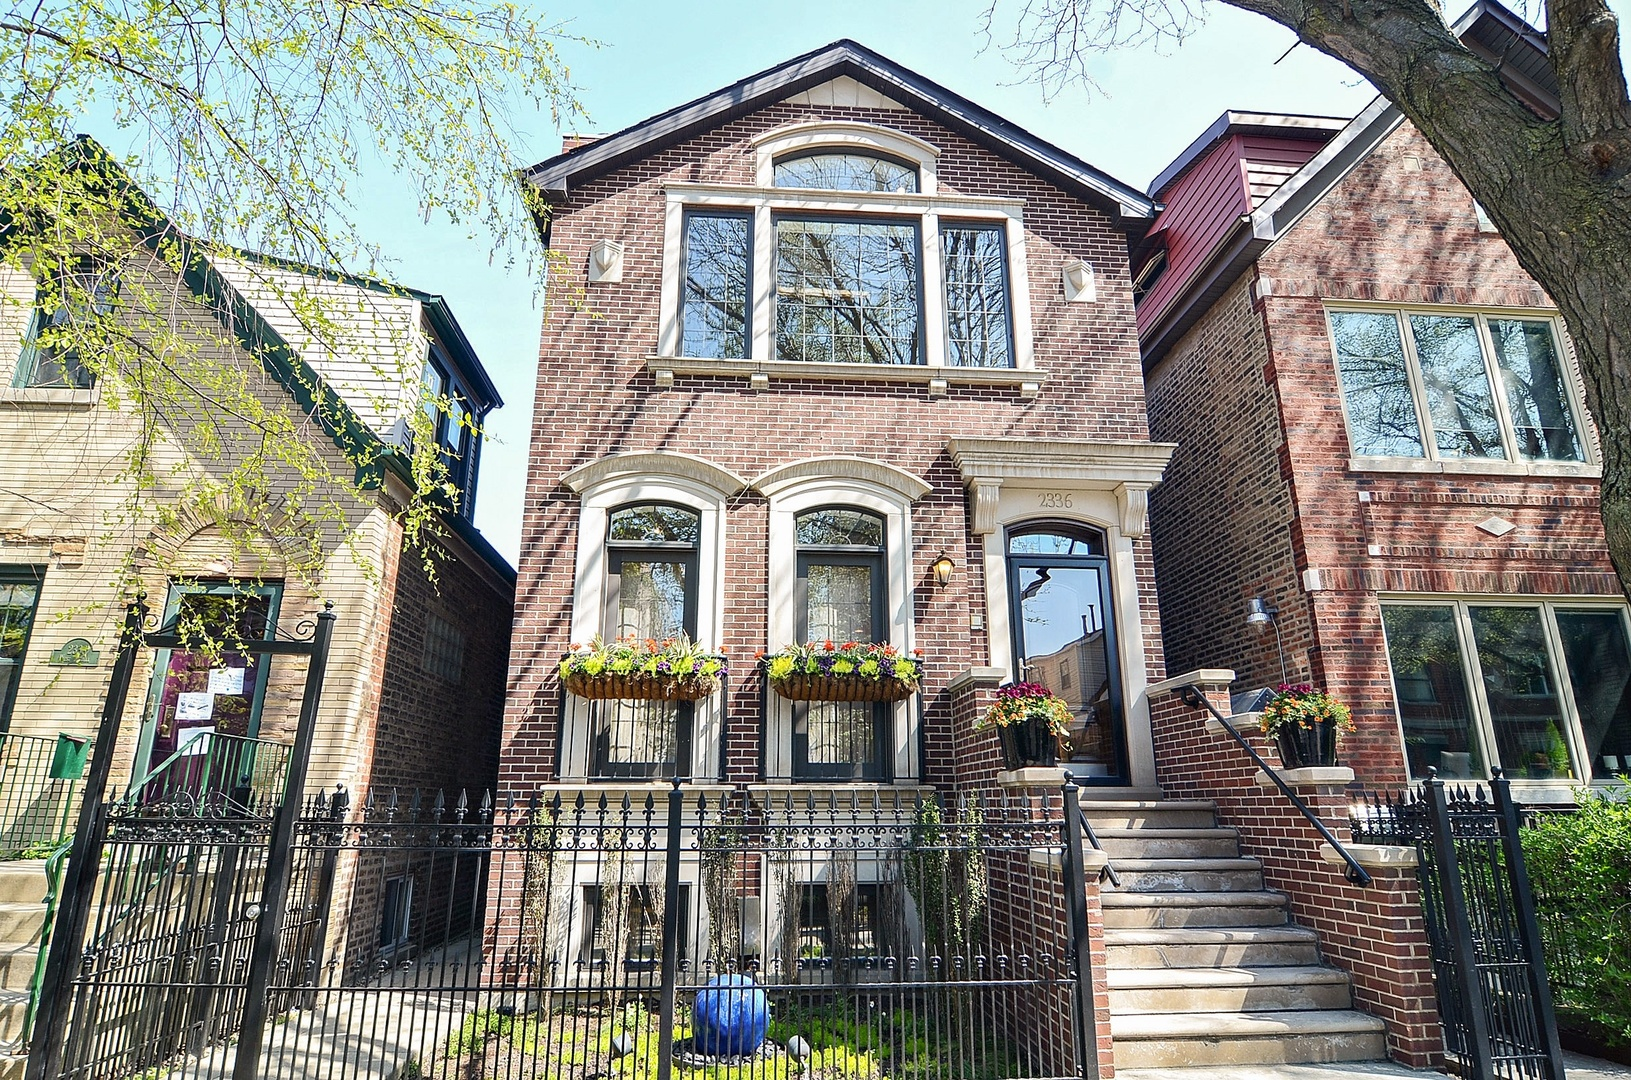 3 House in Logan Square